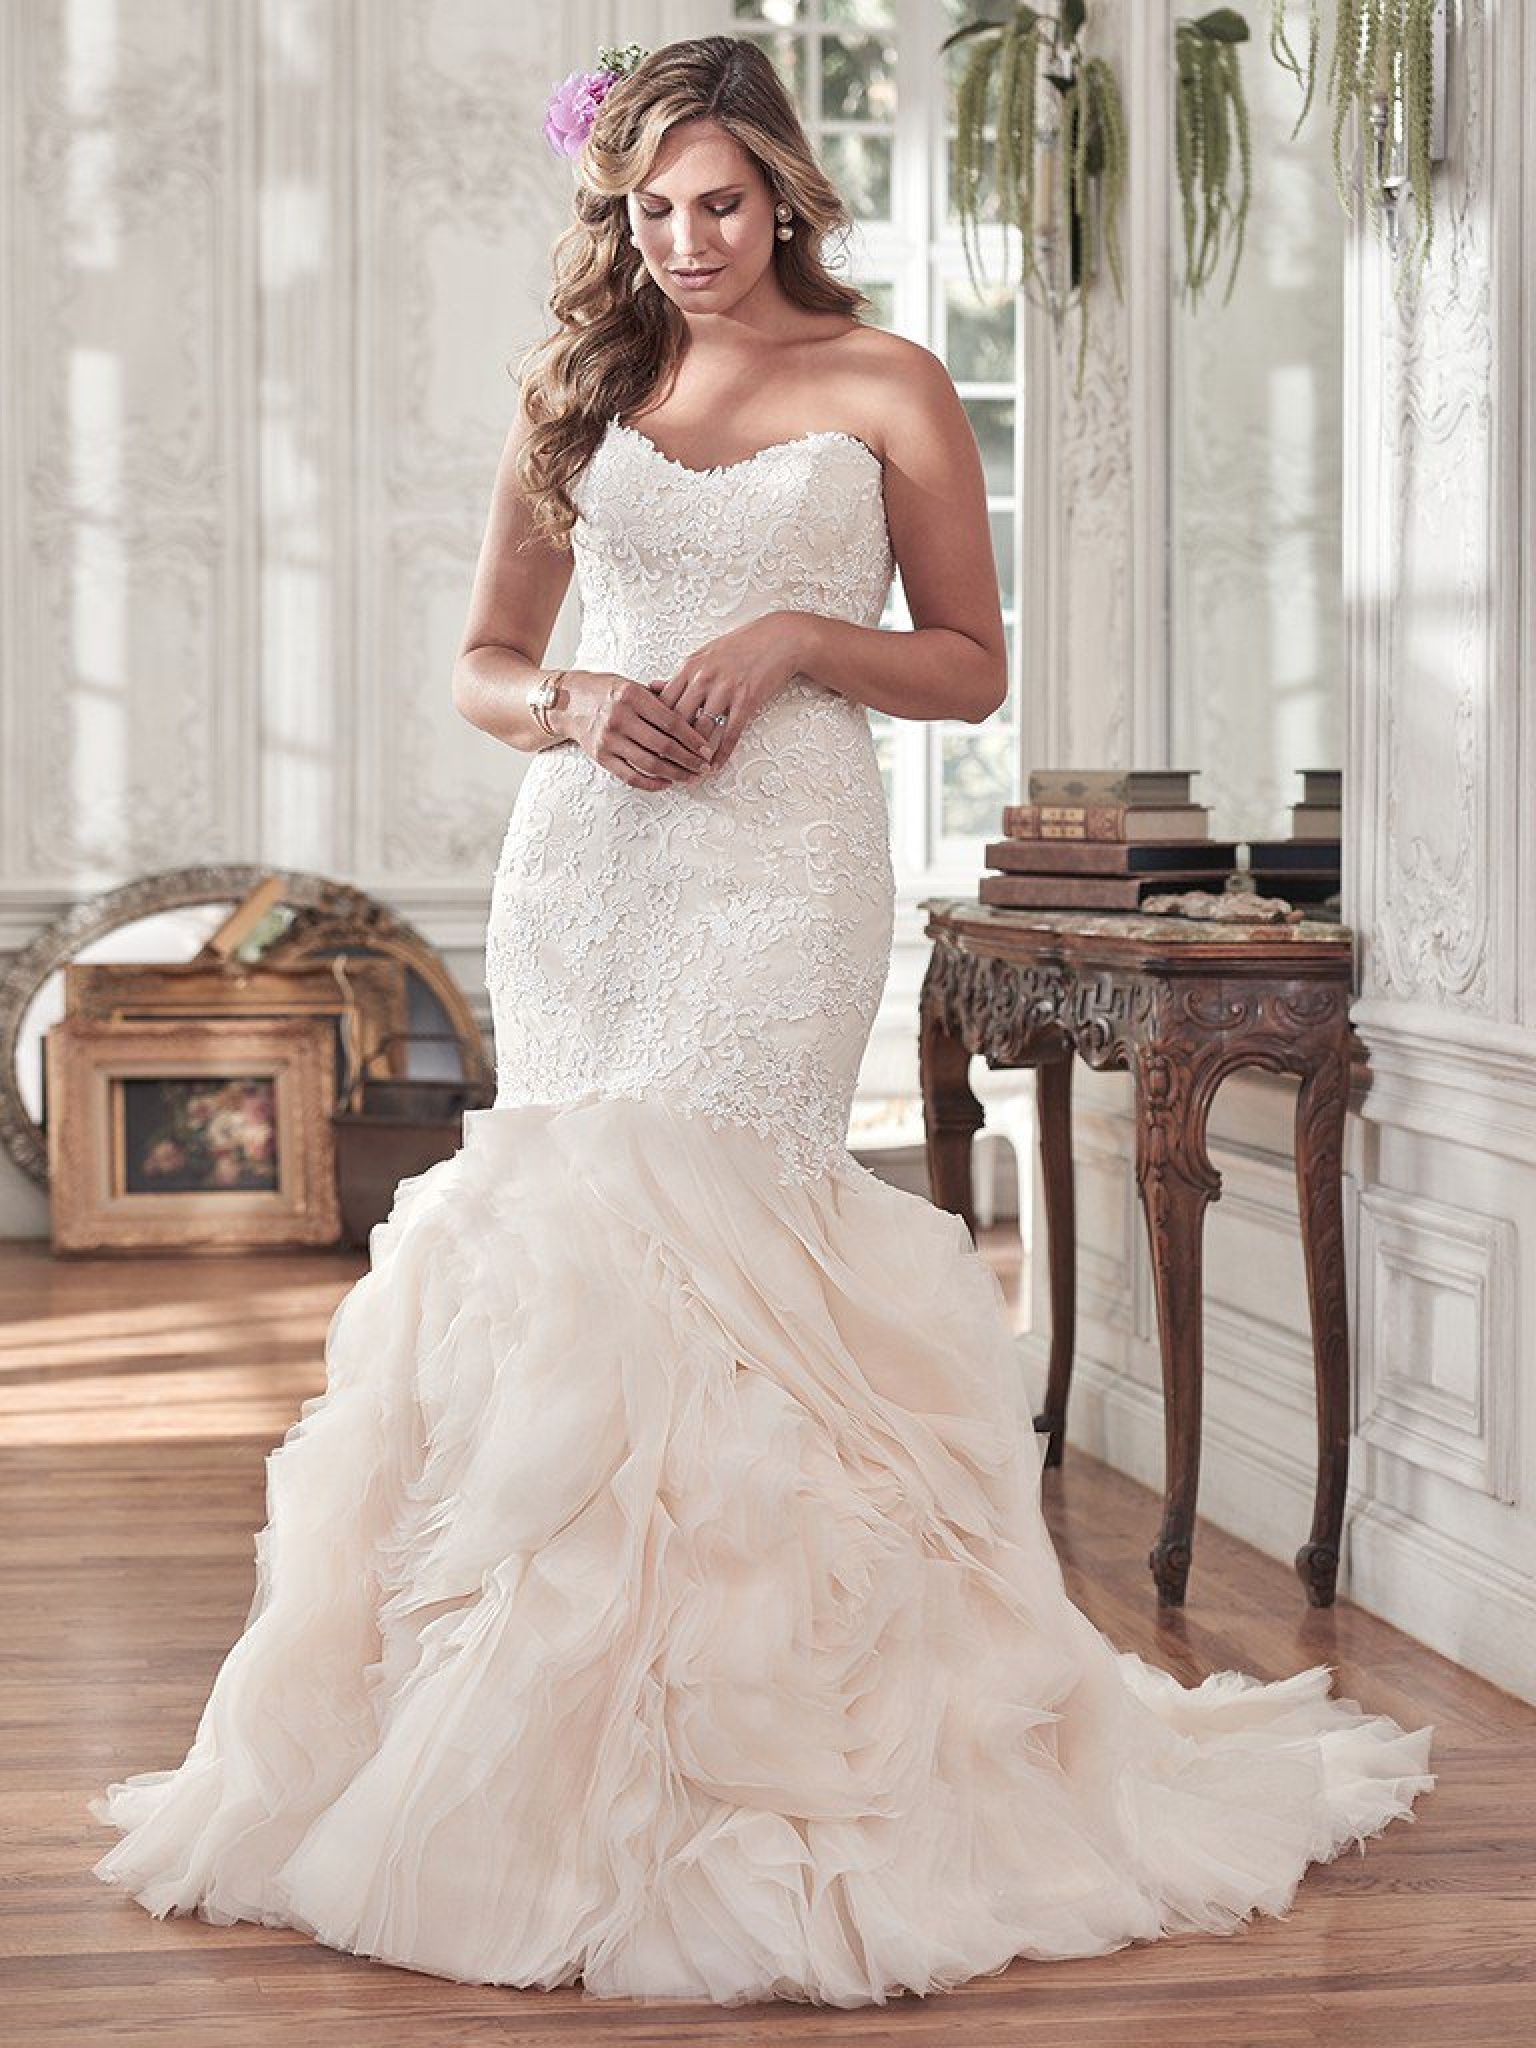 Wedding Dresses For Curvy Brides Plus Size Guest Check More At